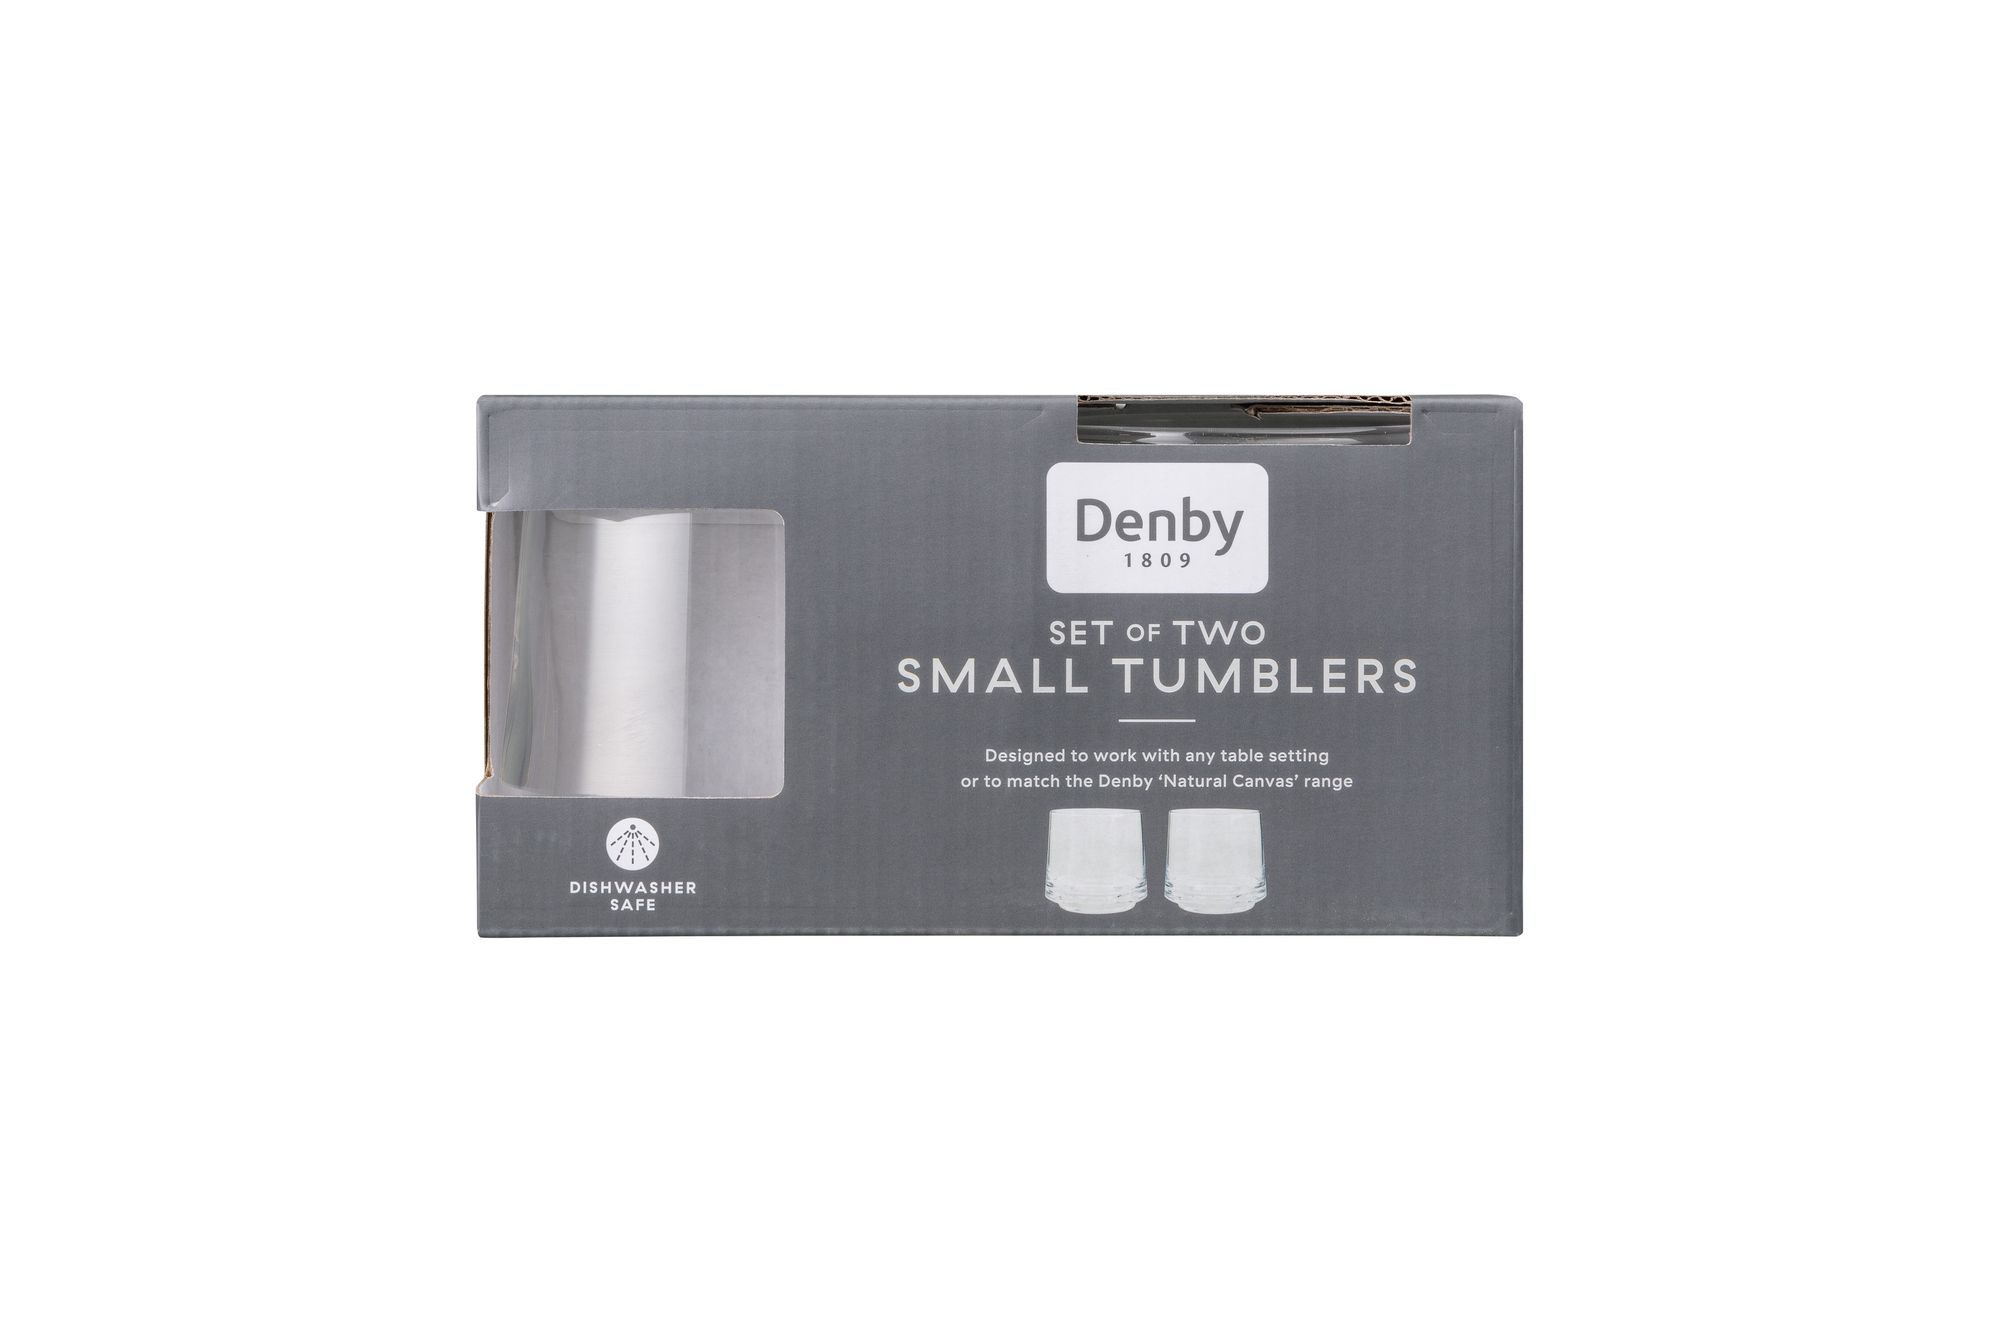 Denby Natural Canvas Tumbler - Set of 2 SMALL thumb 1